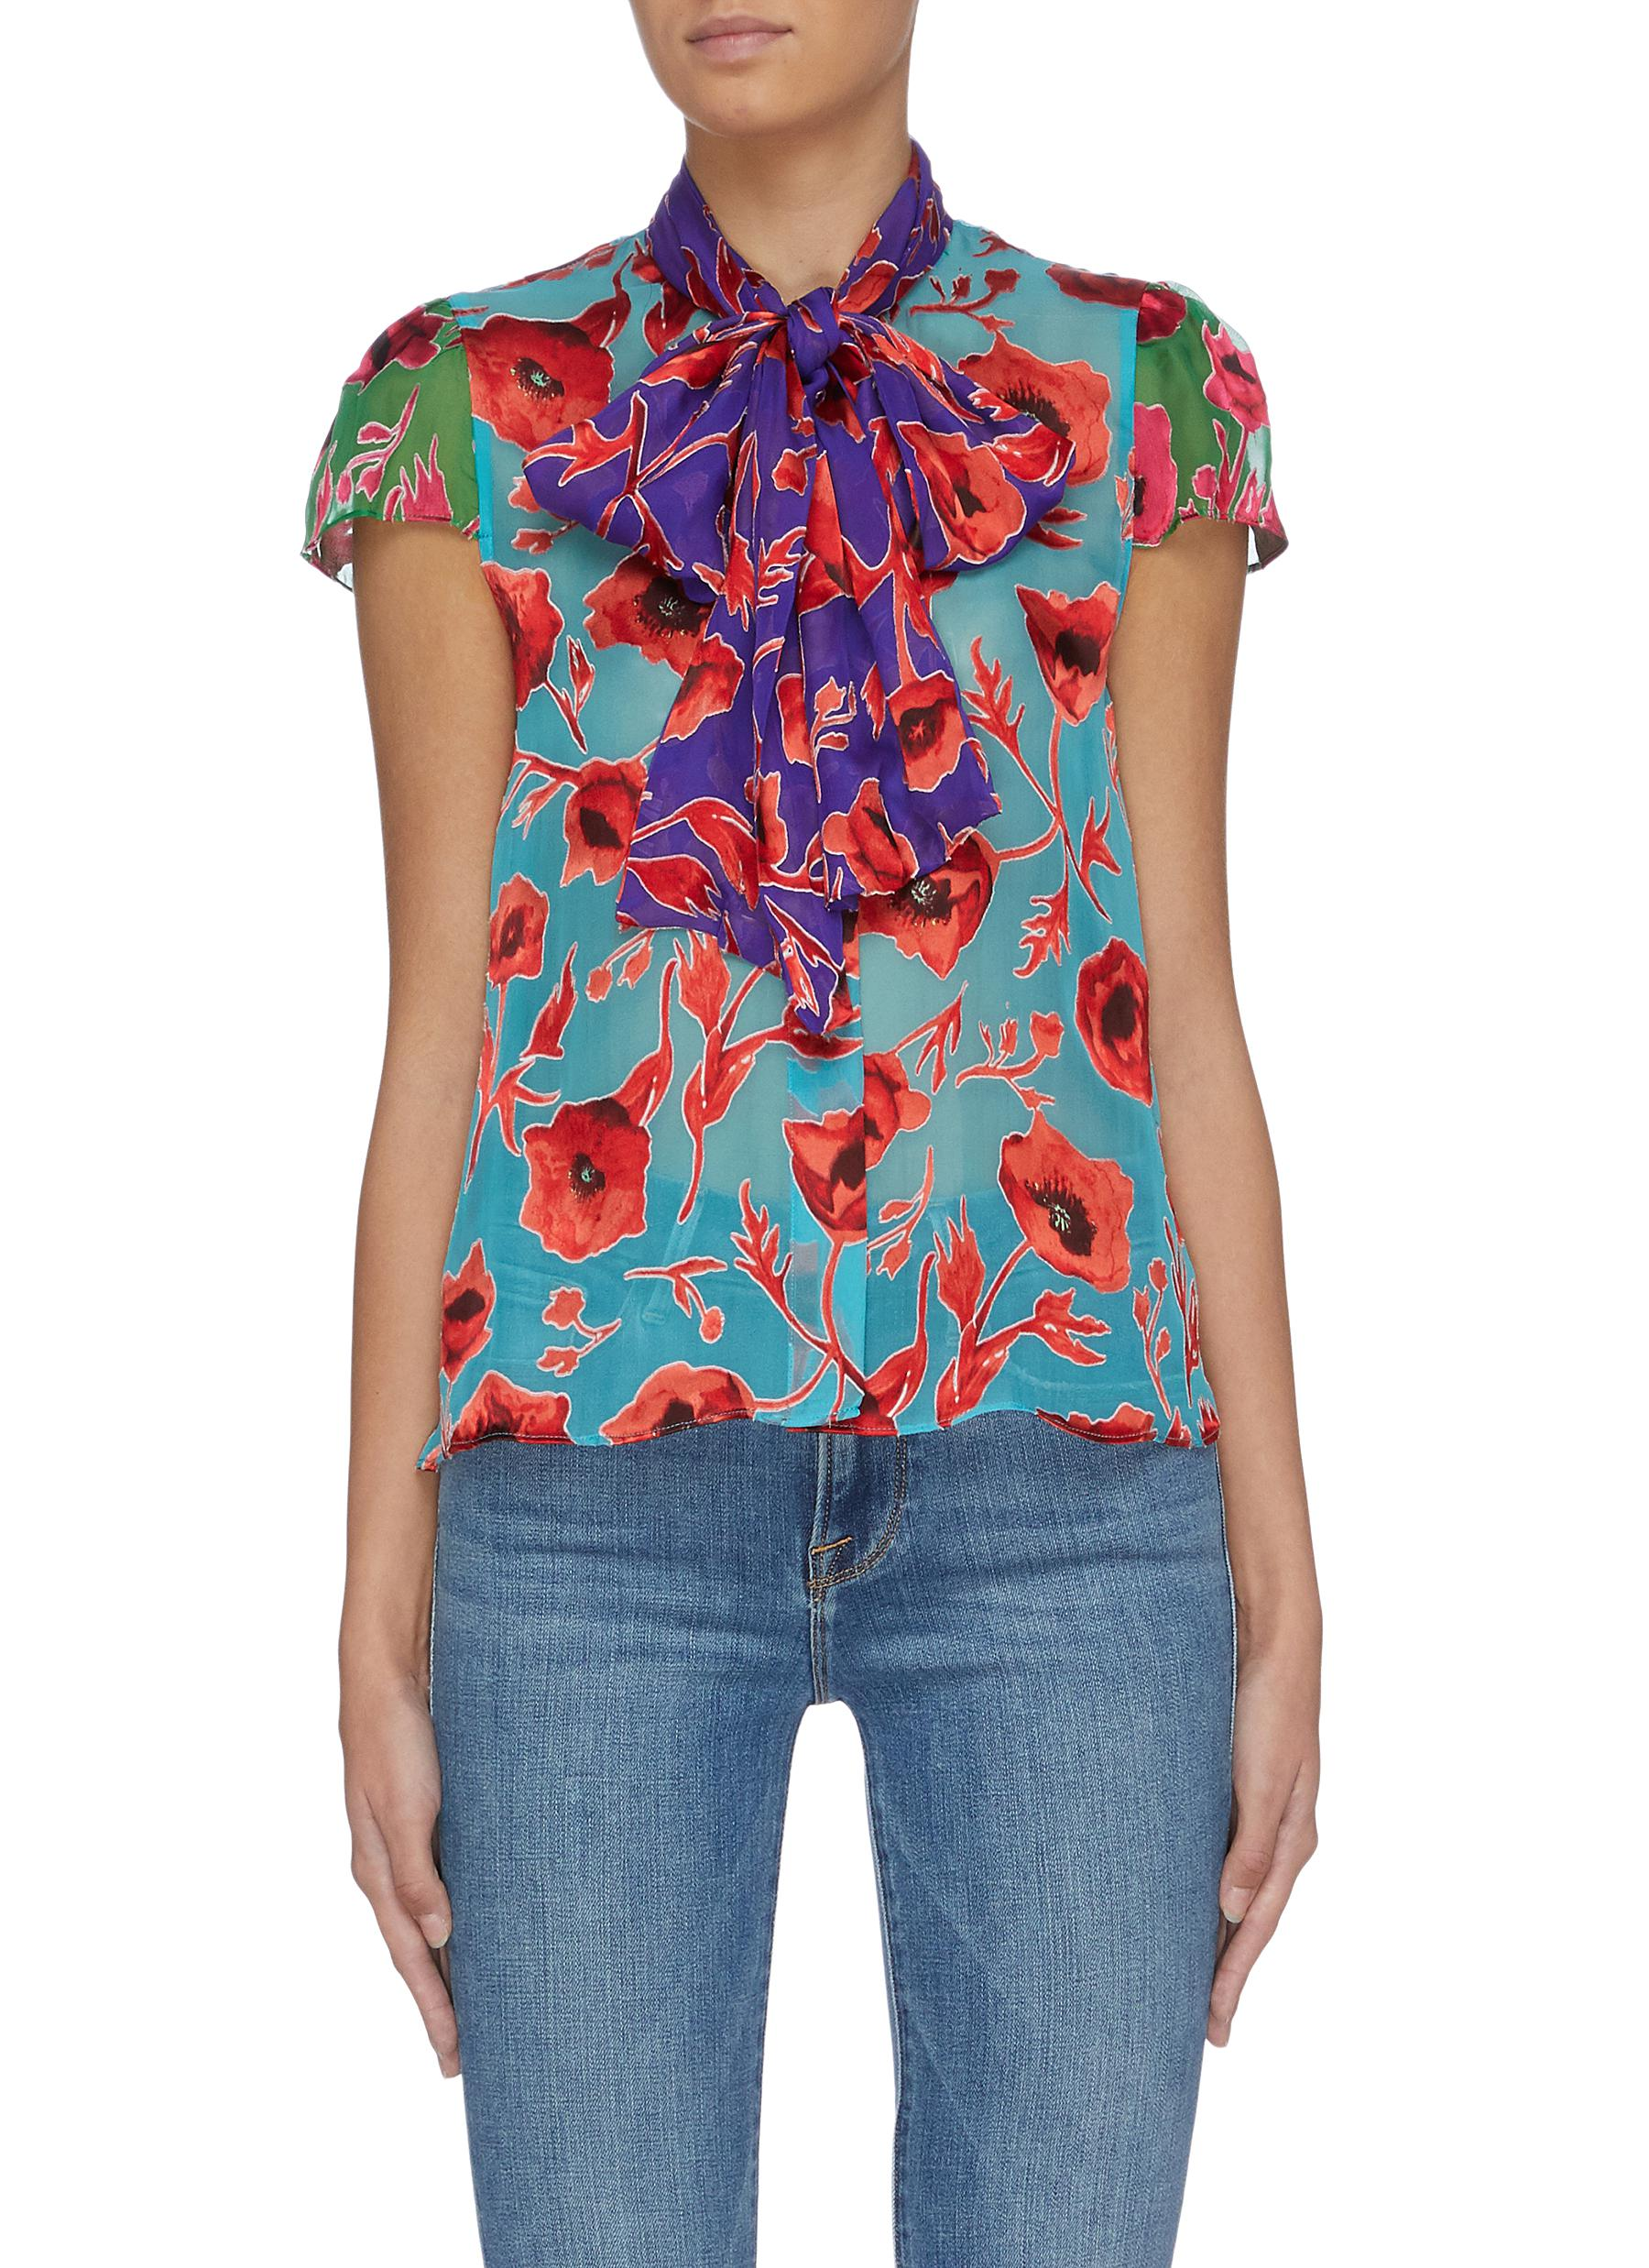 Jeannie colourblock floral print pussybow top by Alice + Olivia